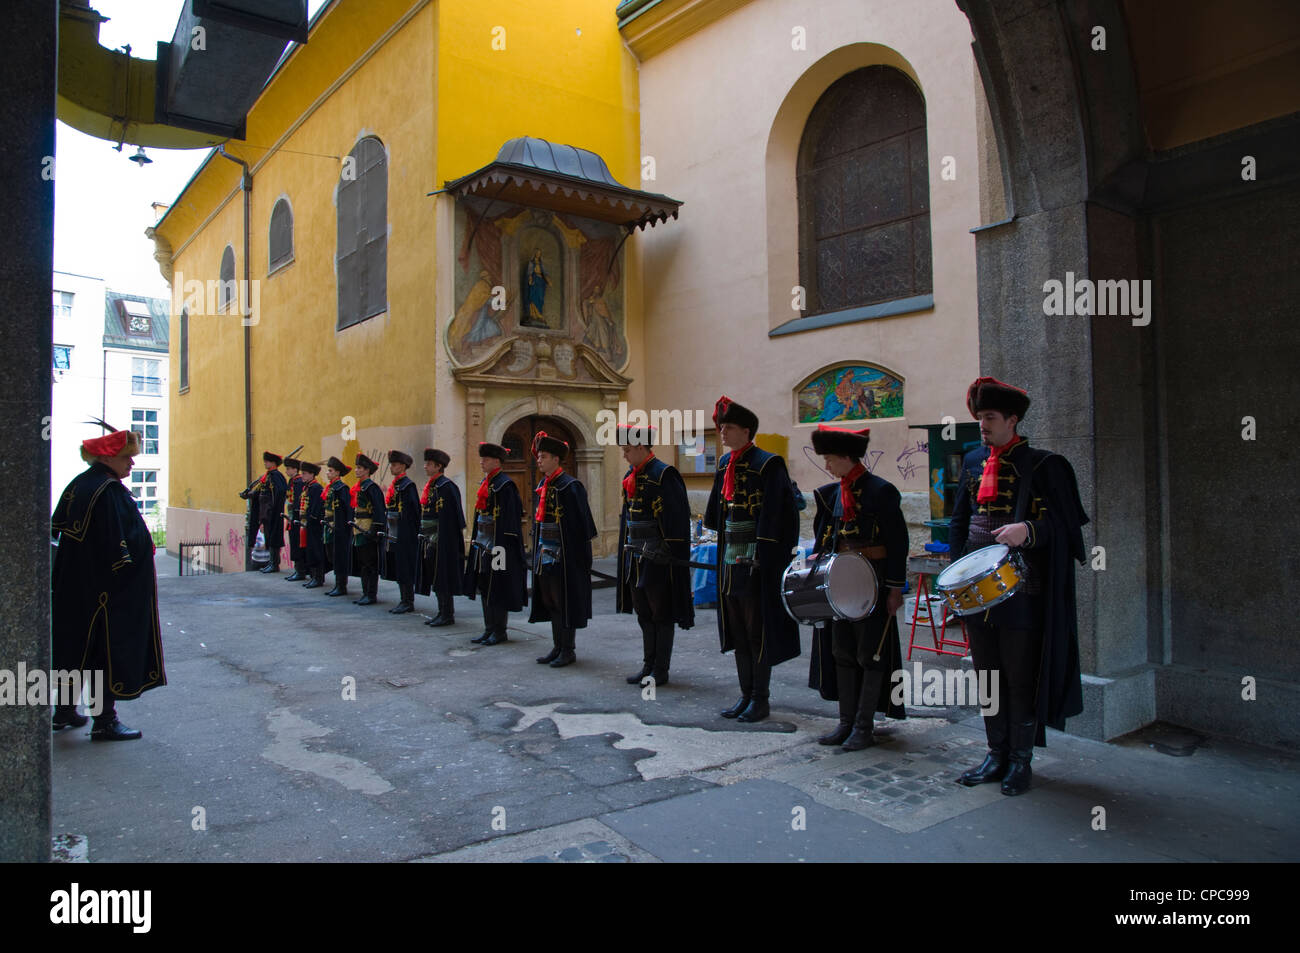 Saturday morning change of the guards of the Kravat regiment at Dolac market Zagreb Croatia Europe - Stock Image